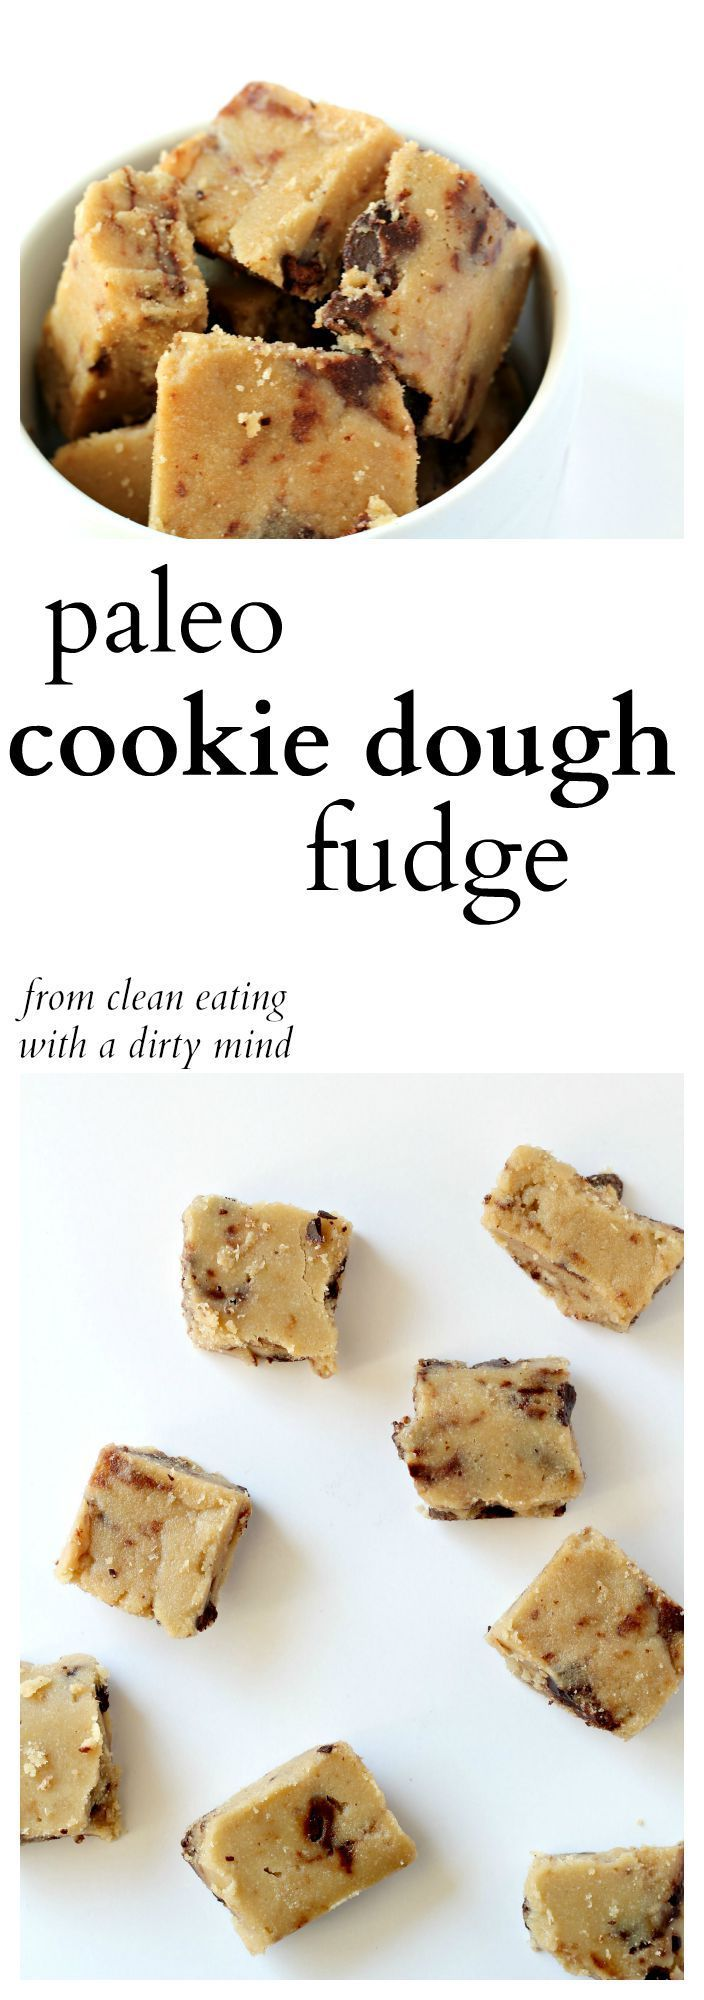 gothic wristbands Paleo Cookie Dough Fudge  finally a cookie dough that is paleo gluten free and seriously delicious